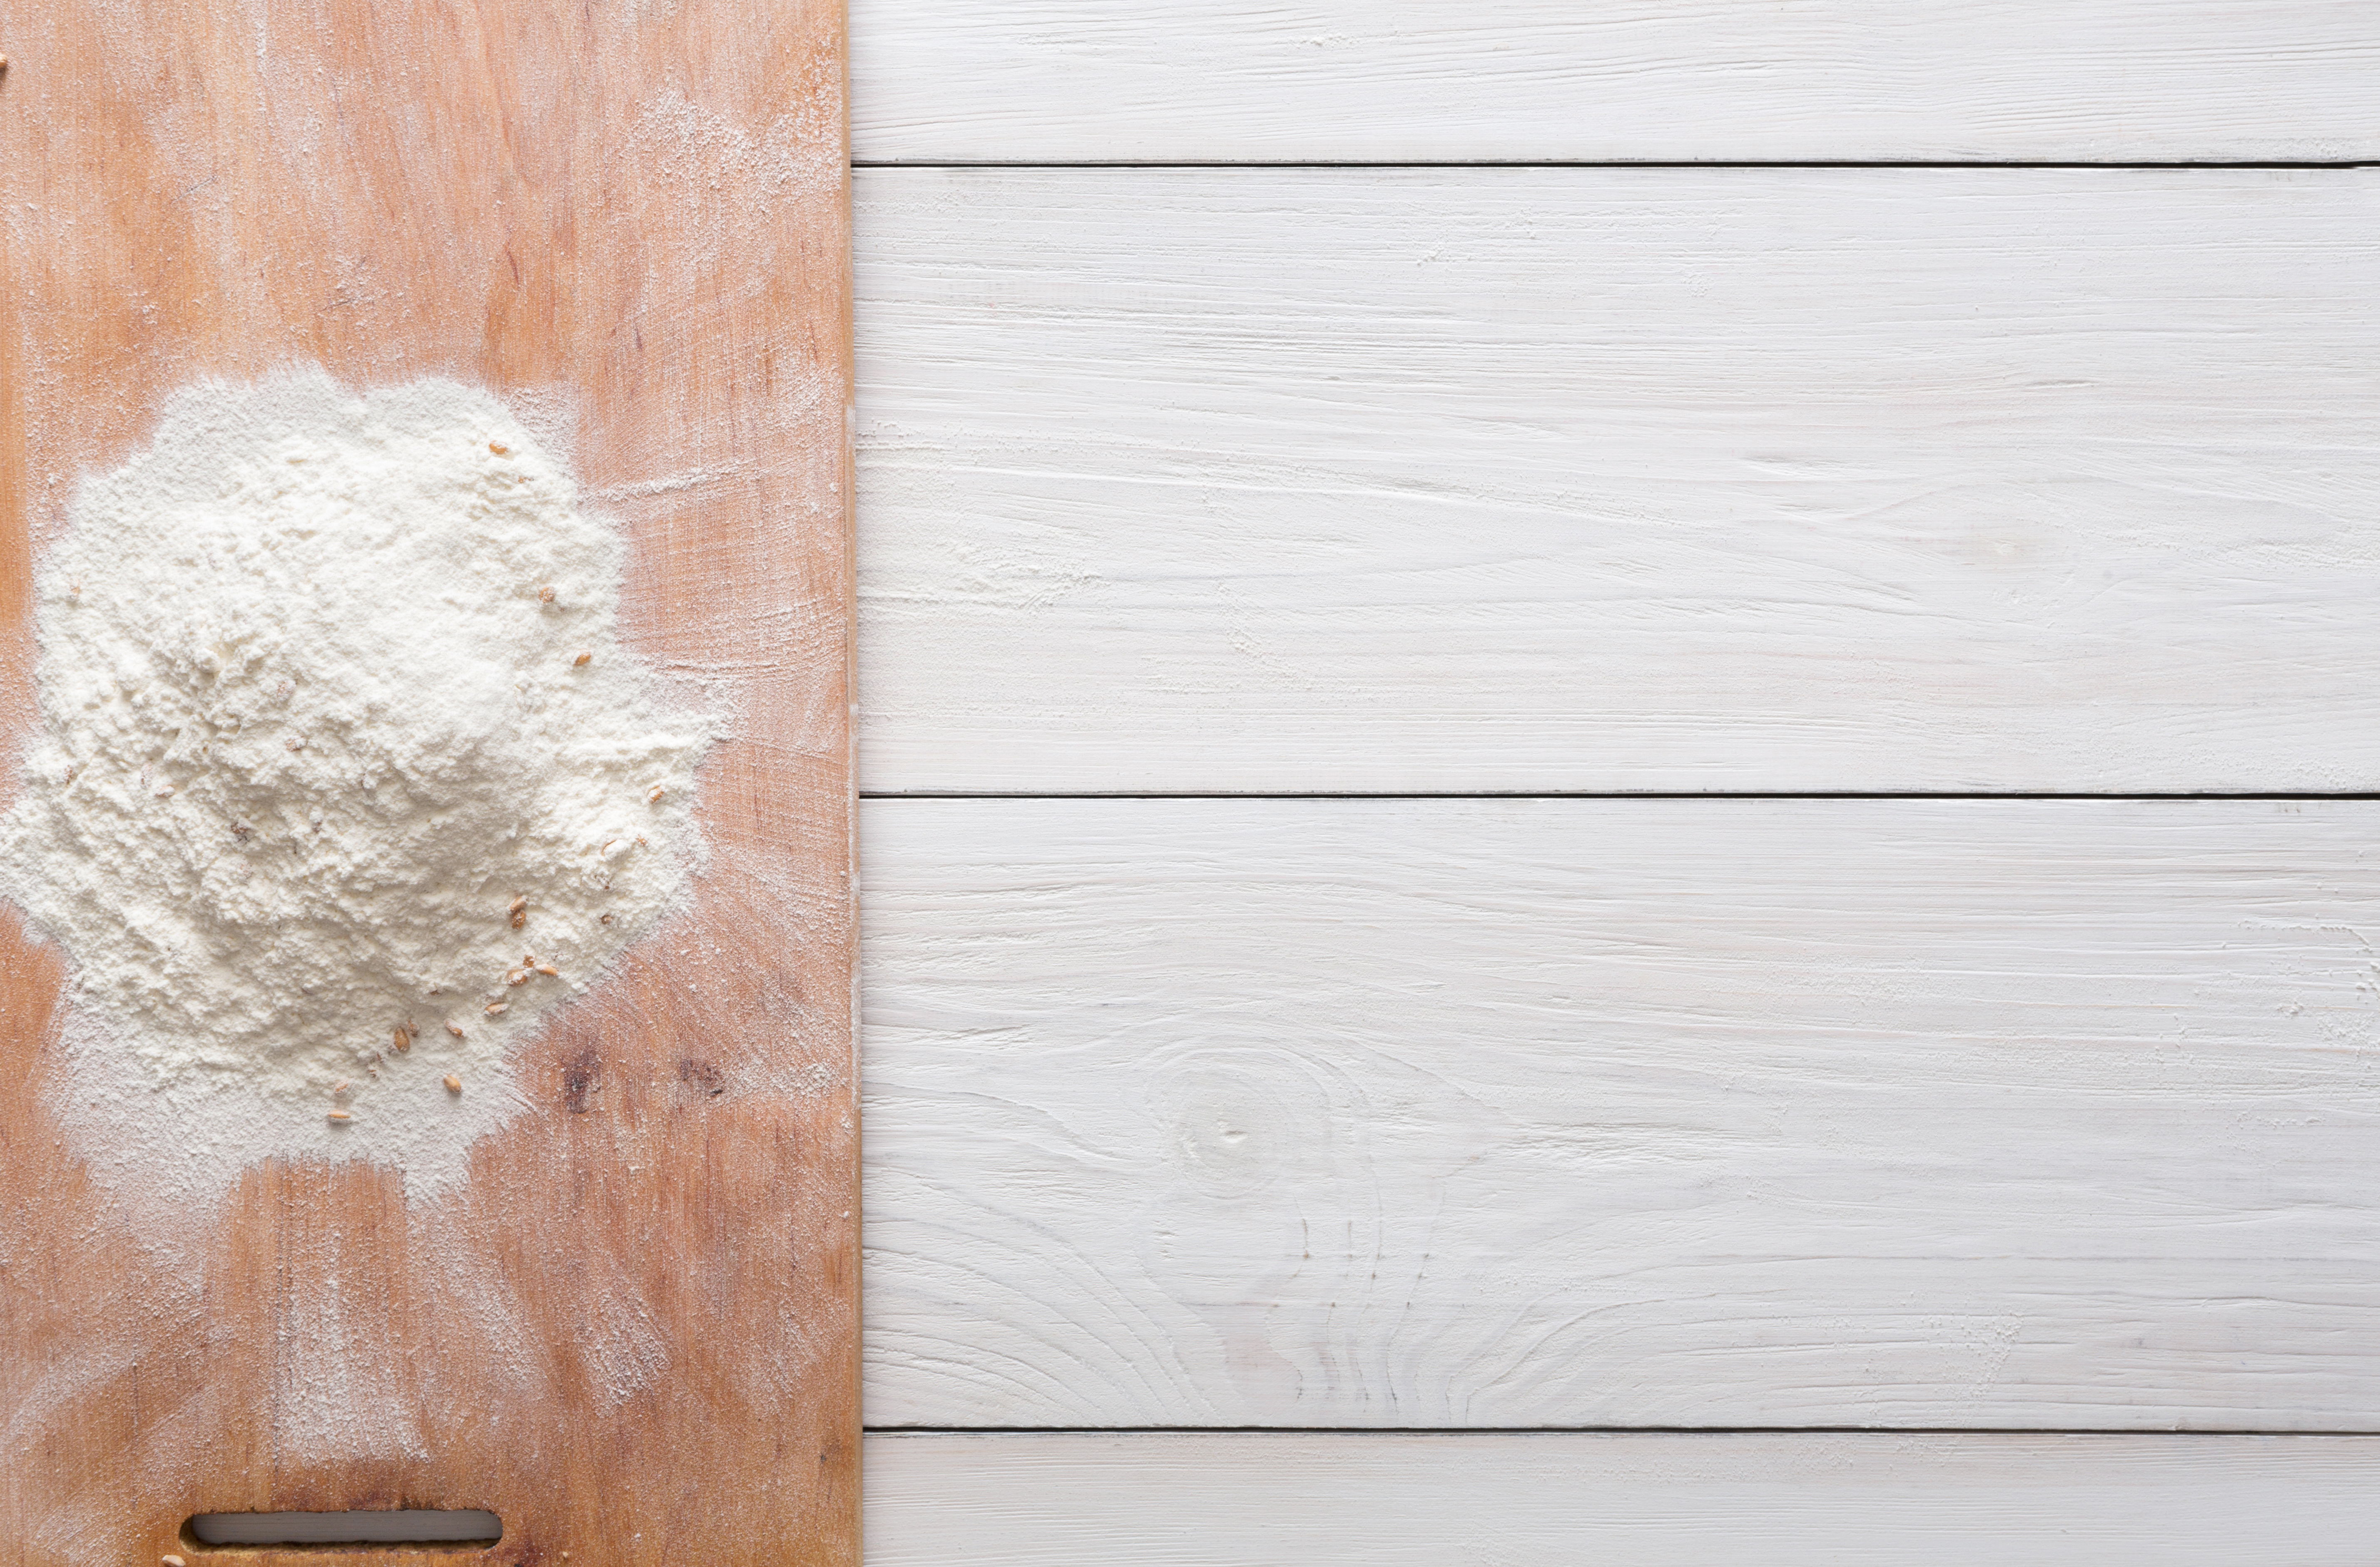 Baking concept on white wood background, sprinkled flour with copy space